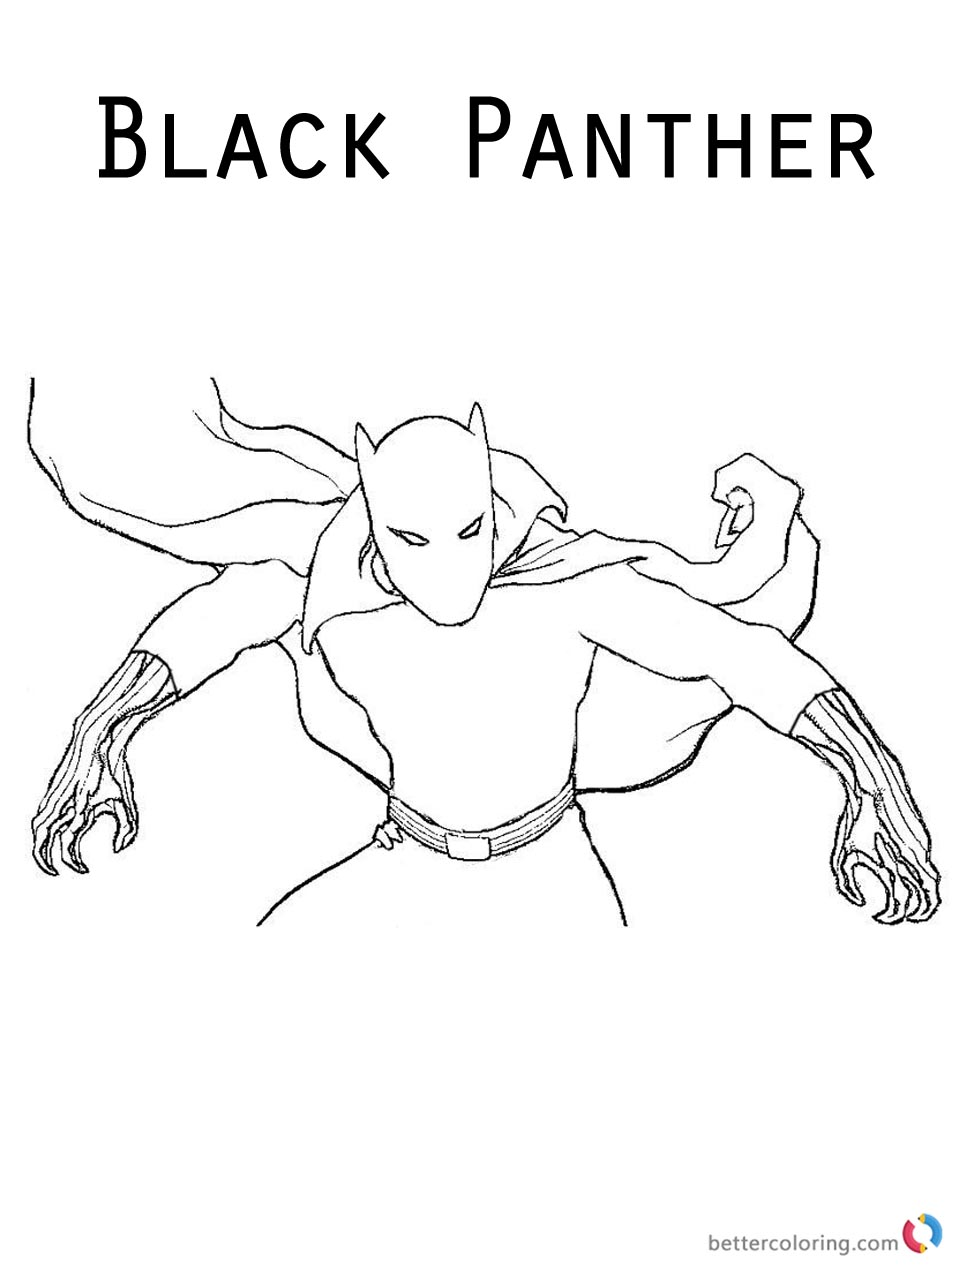 Cool Black Panther Coloring Pages Sketch of Marvel Moive Printable